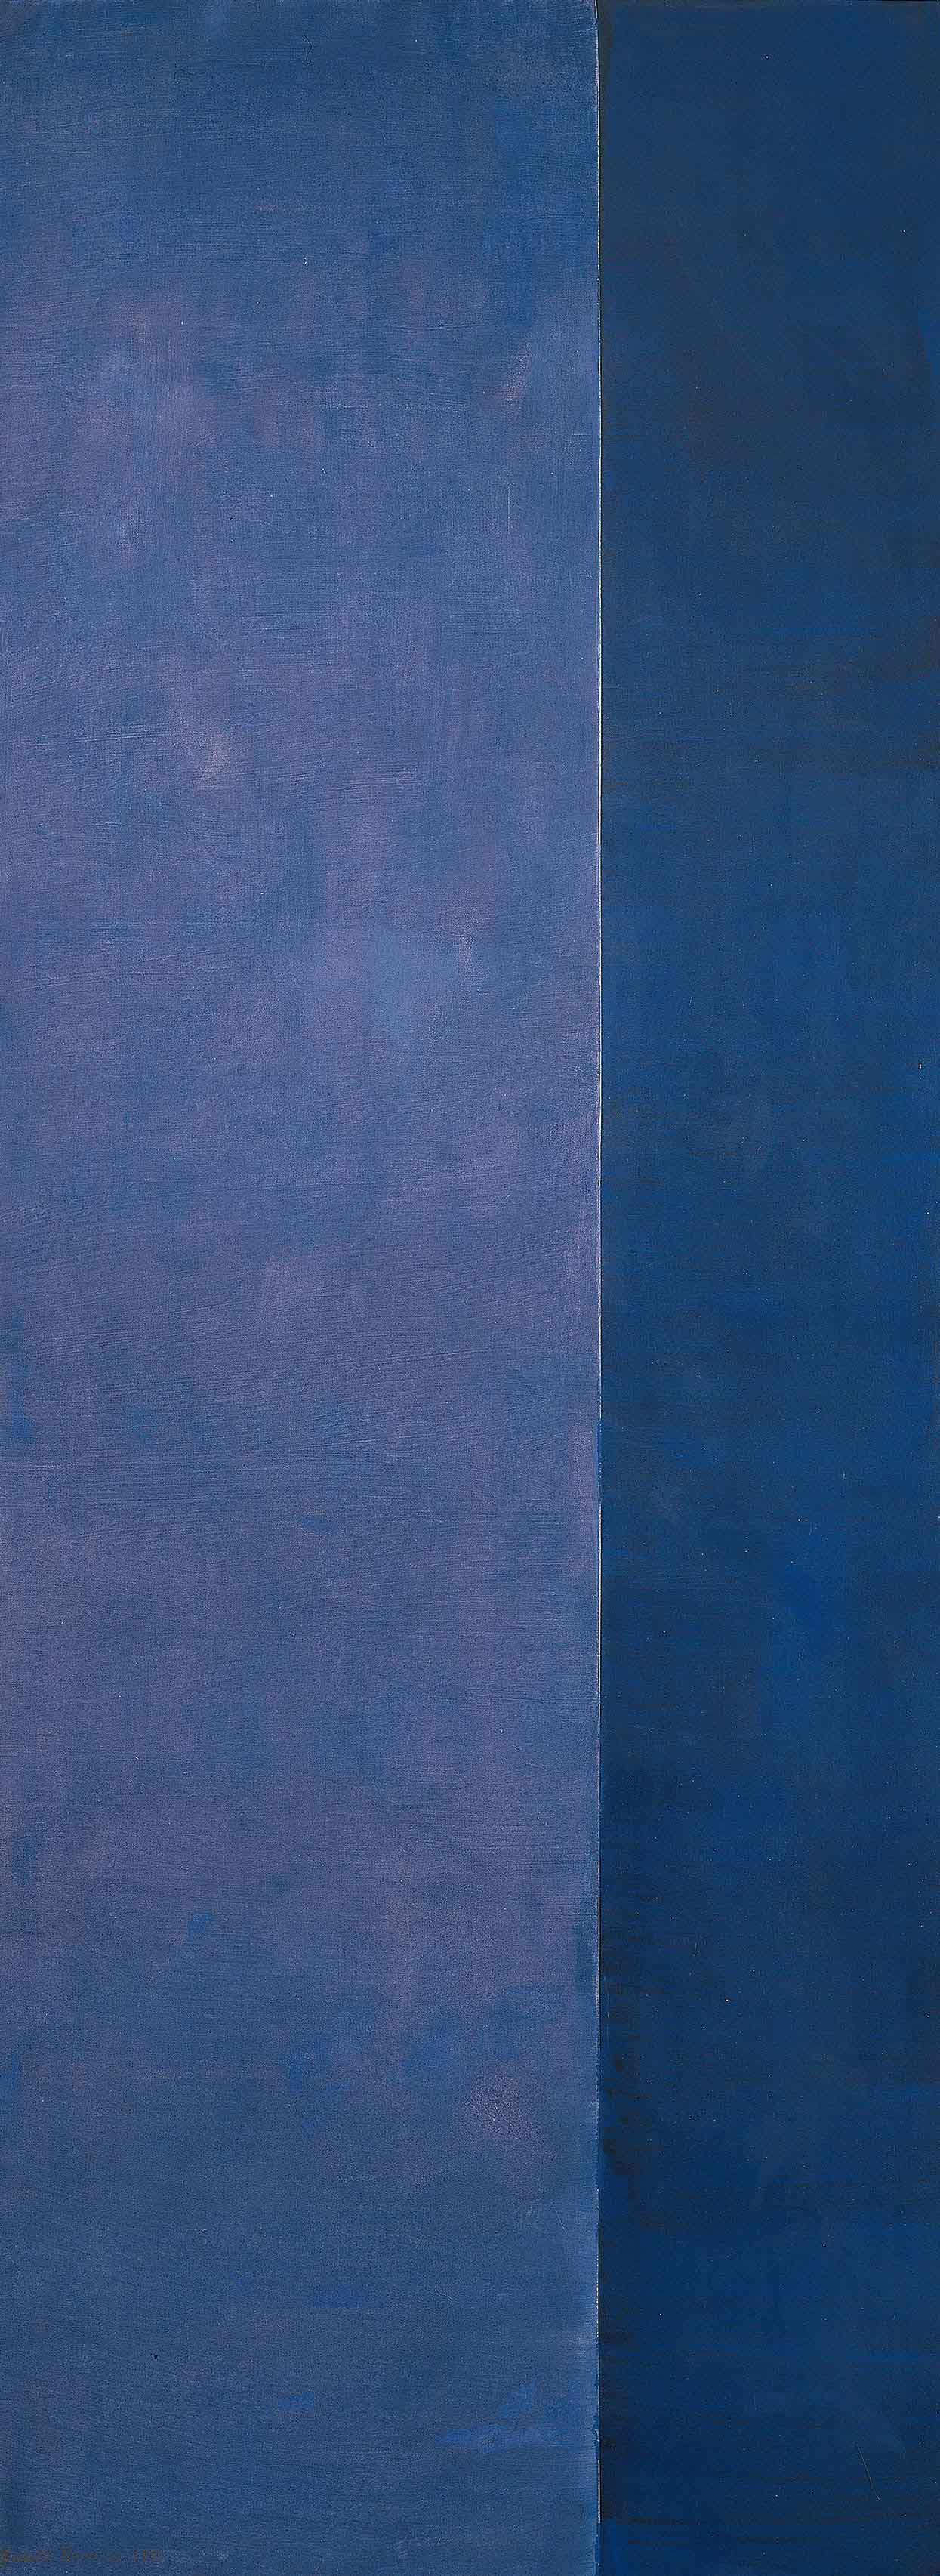 Barnett Newman Total Surface Painters Table